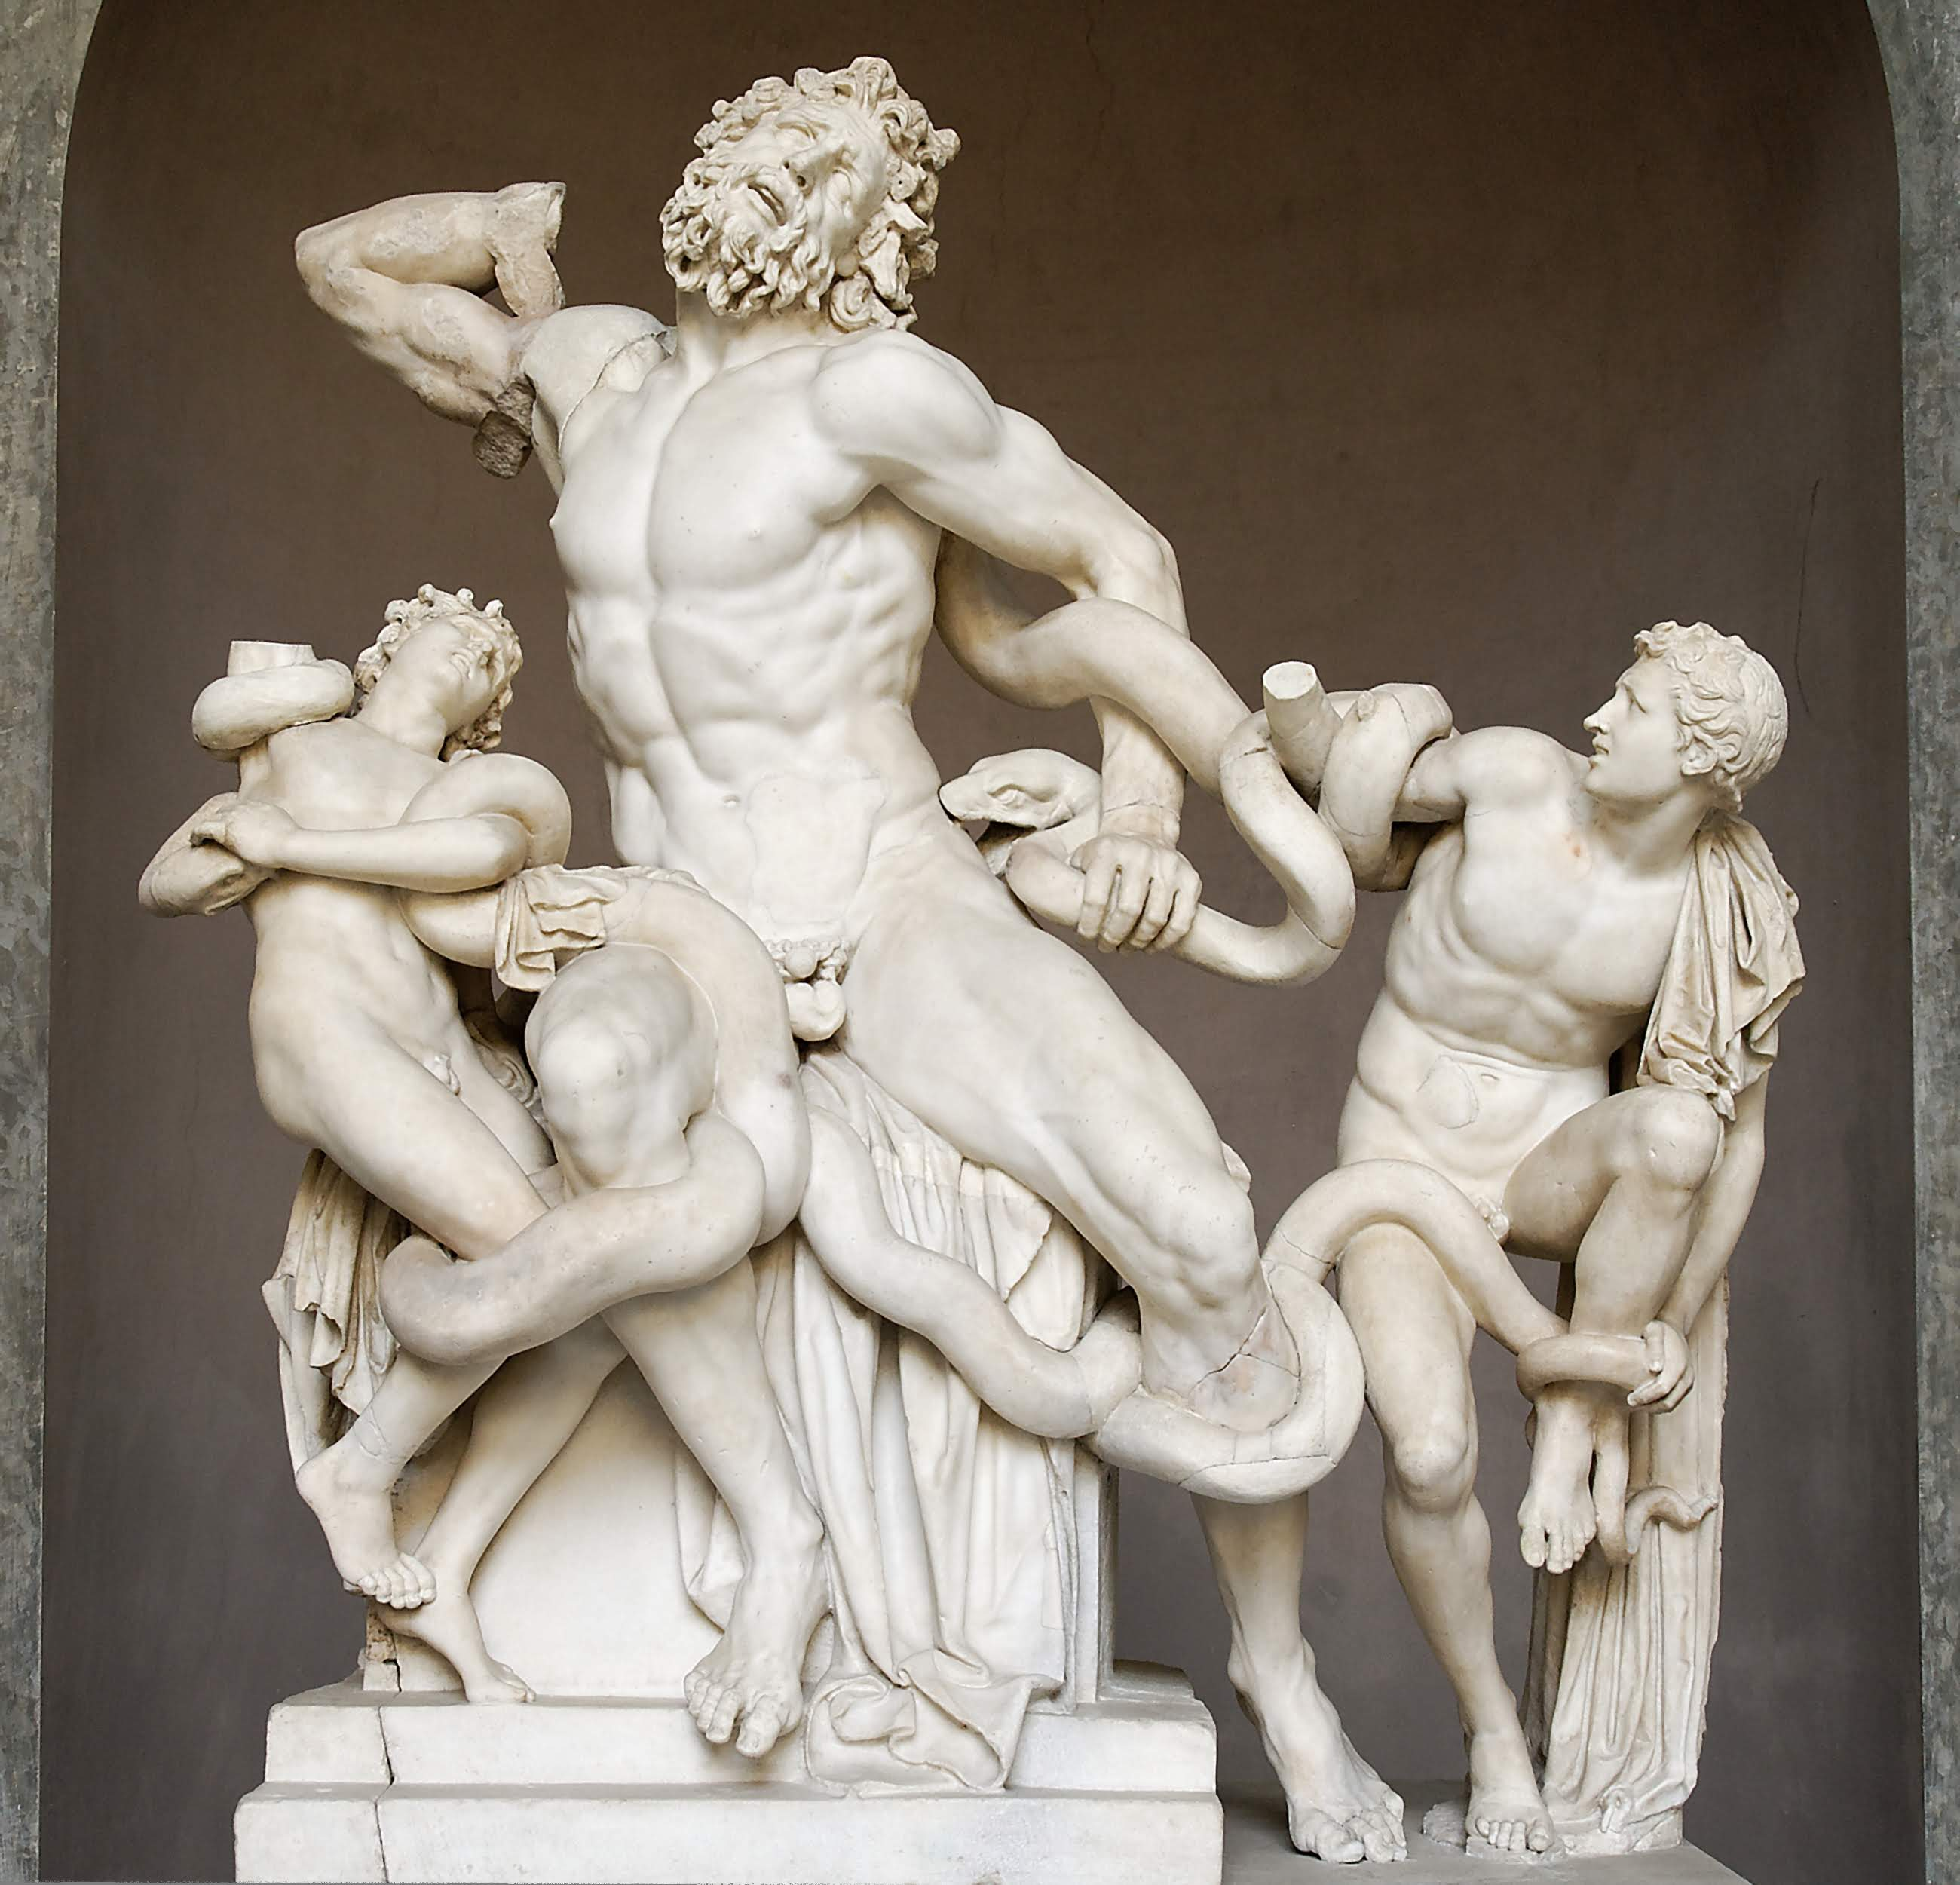 A Greek sculpture of Laocoon and His Sons at the Vatican Museum.